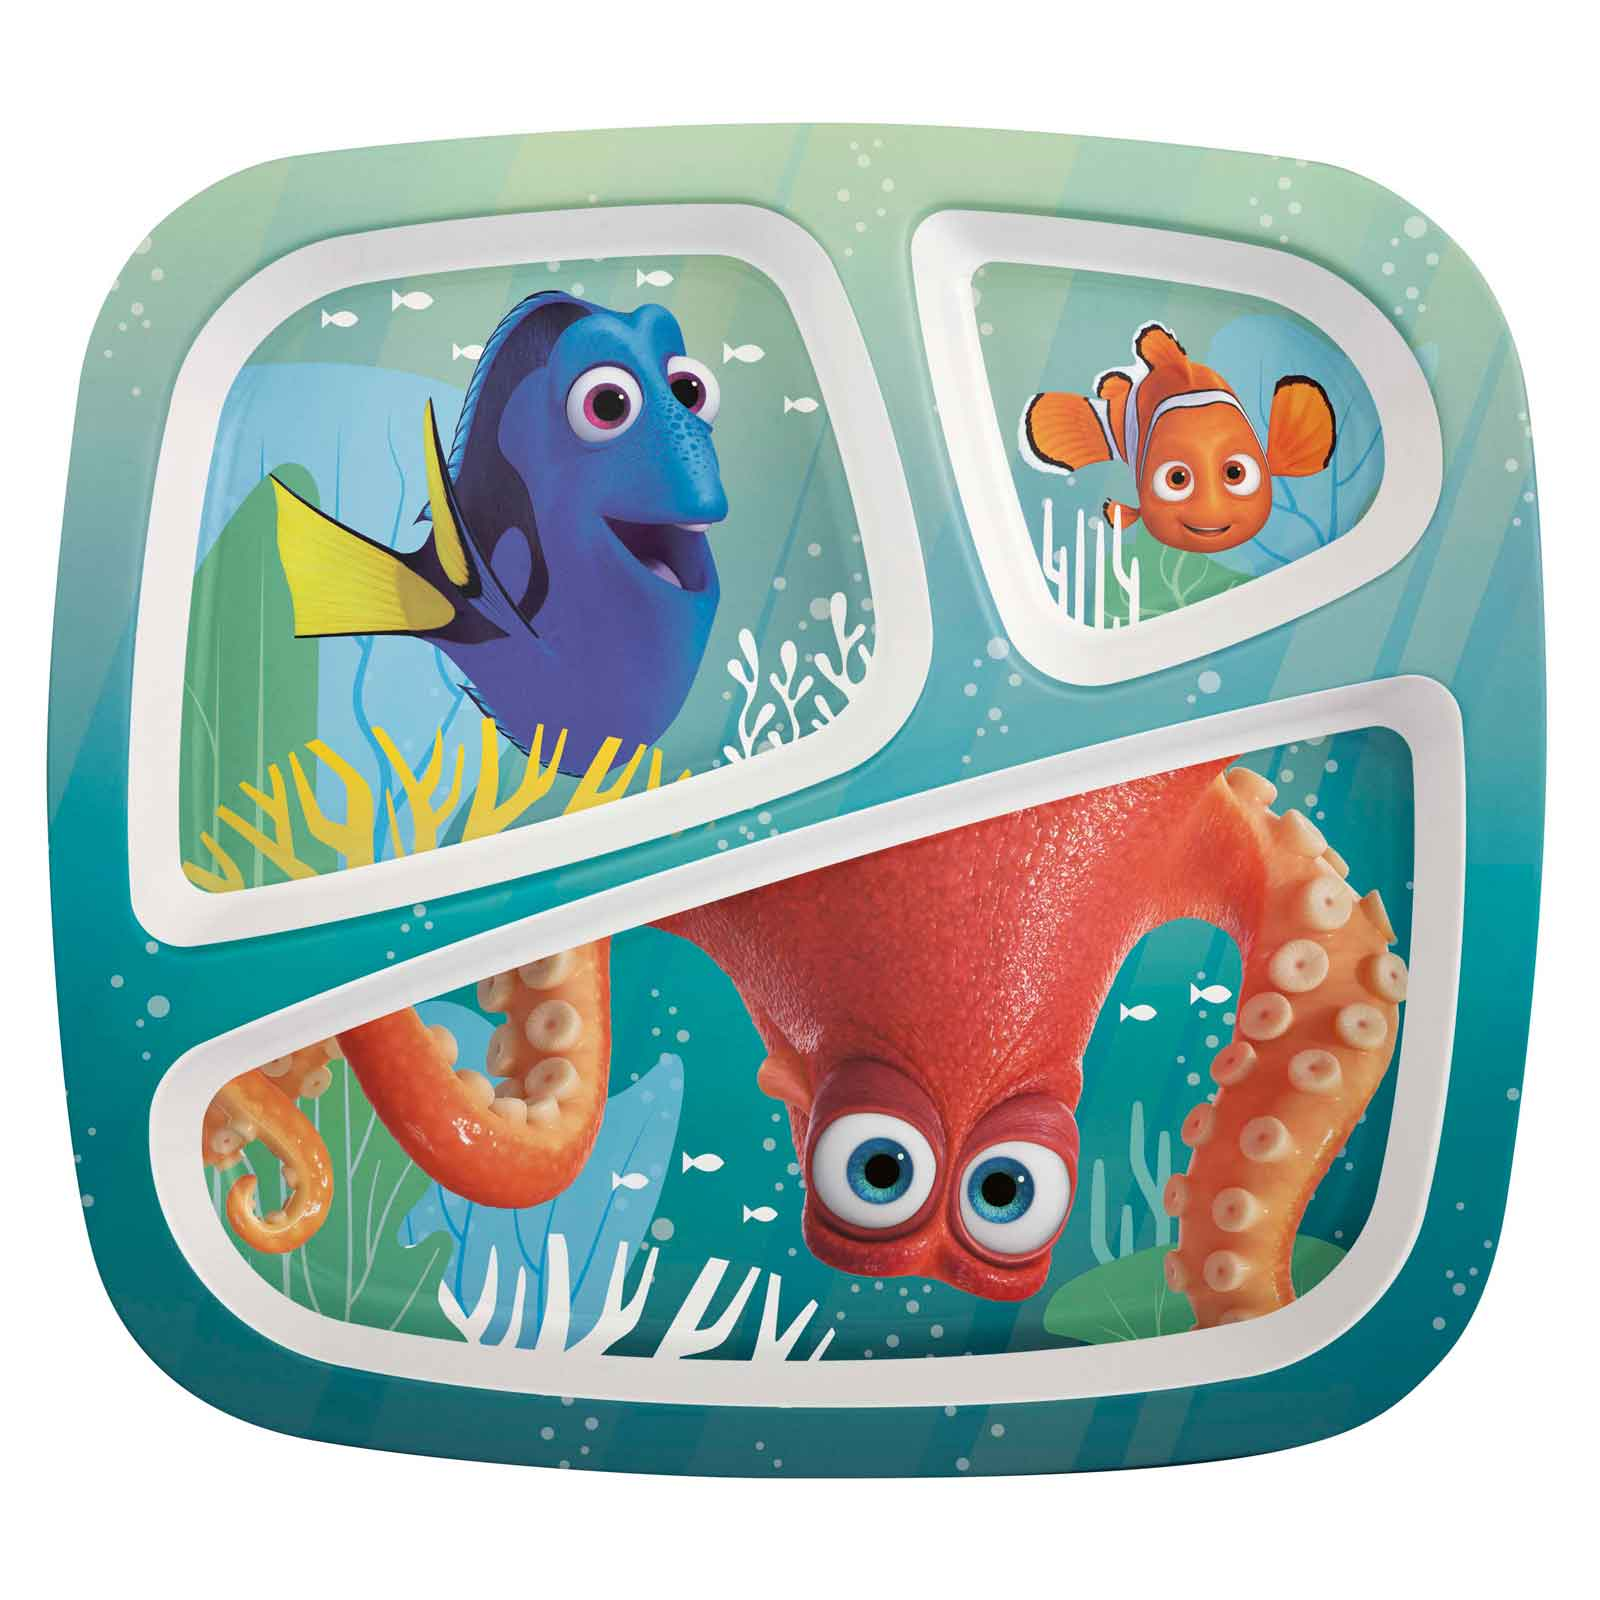 Decree Dory Kids Divided Plate for sale | Dory | Zak .  sc 1 st  Plate Dish. & Childrens Divided Plates. 3-Compartment Divided Plastic Kids Tray ...